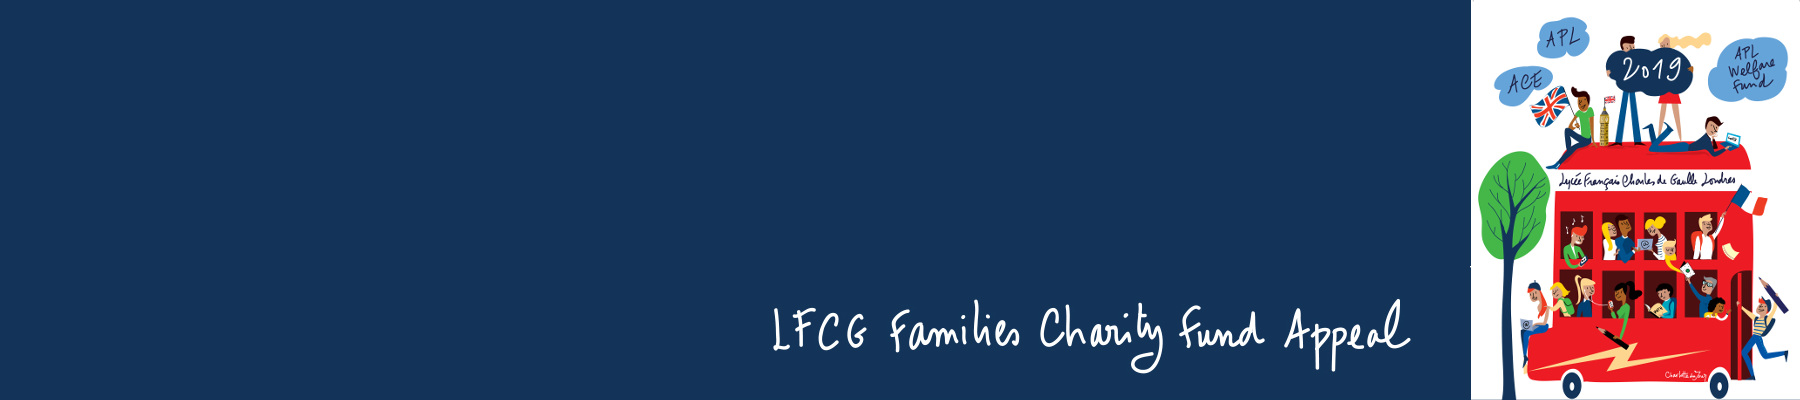 Banner-GALA-LFCG-Families-Funds2019-1800x400